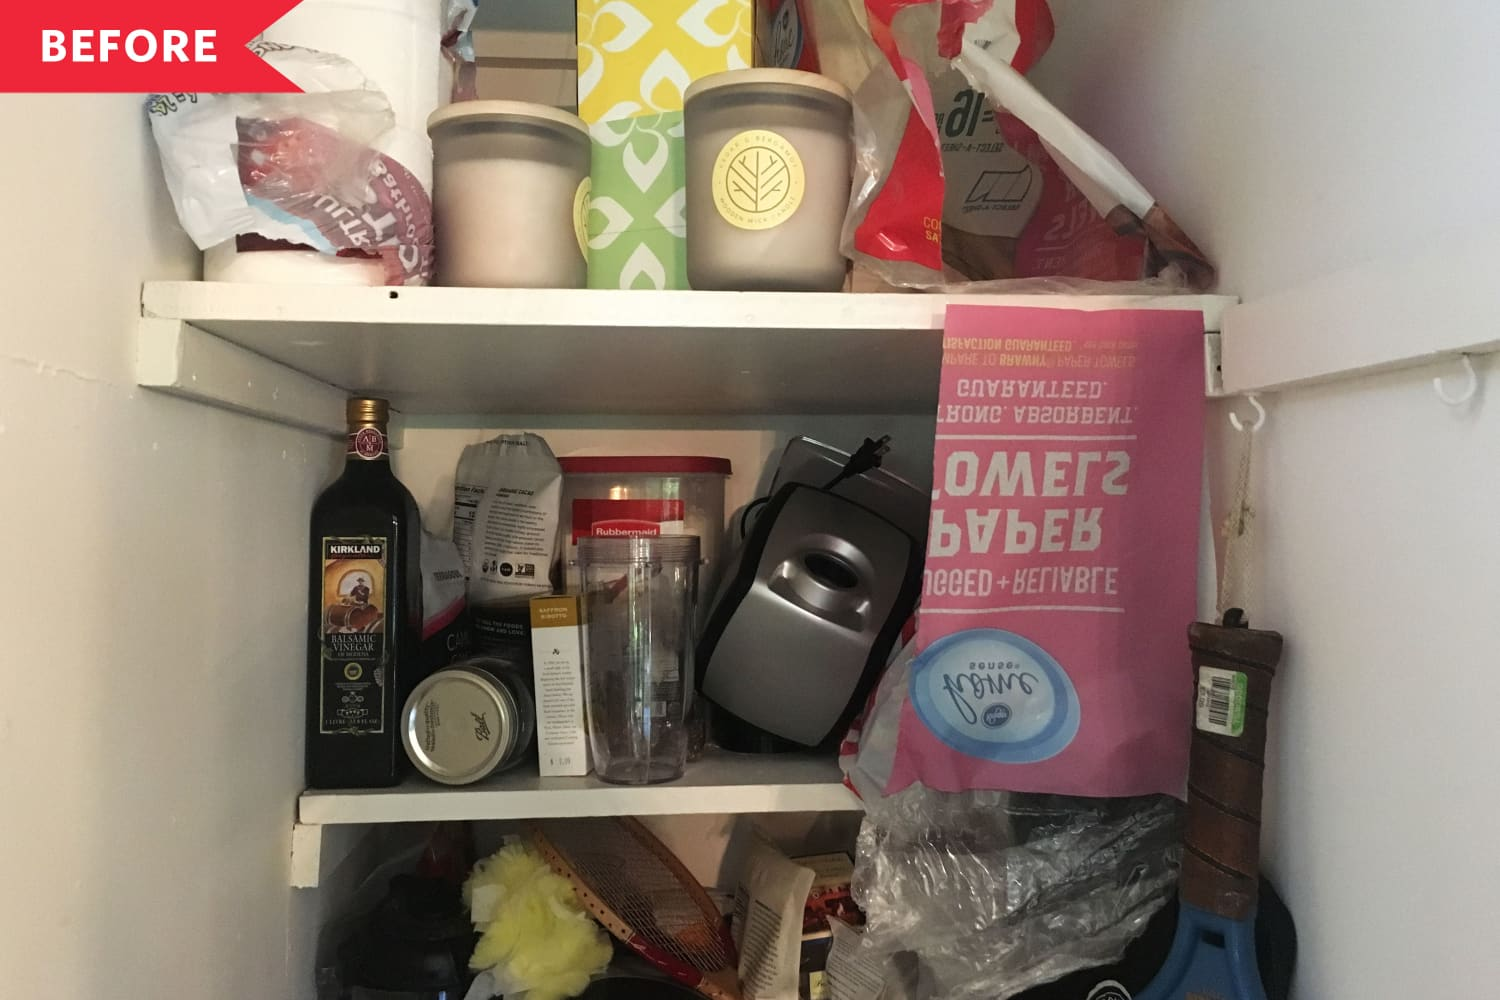 Ina Garten's Instagram Just Completely Changed How I Organize My Pantry